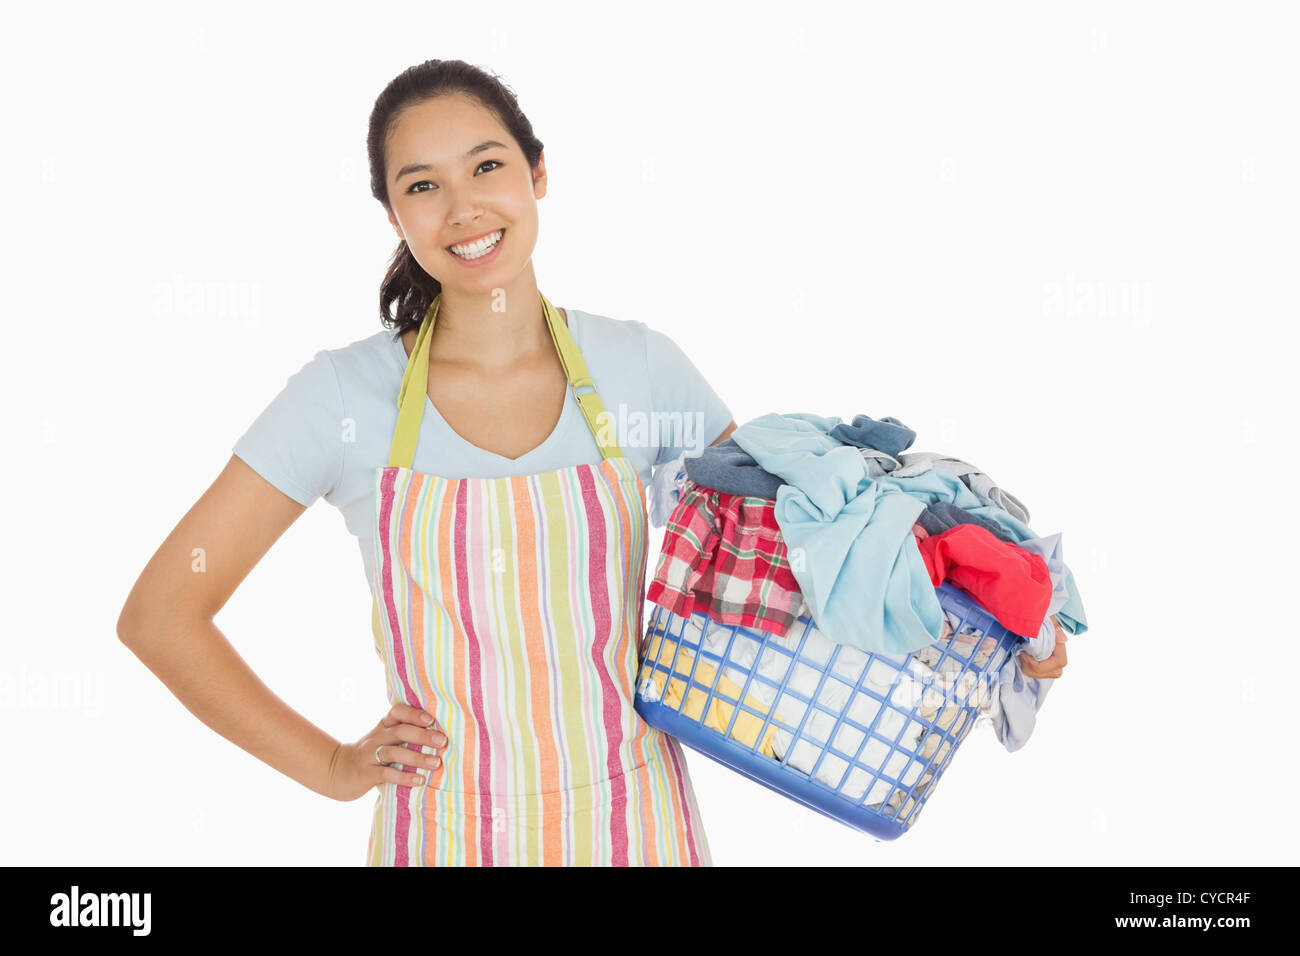 Happy woman with laundry basket - Stock Image